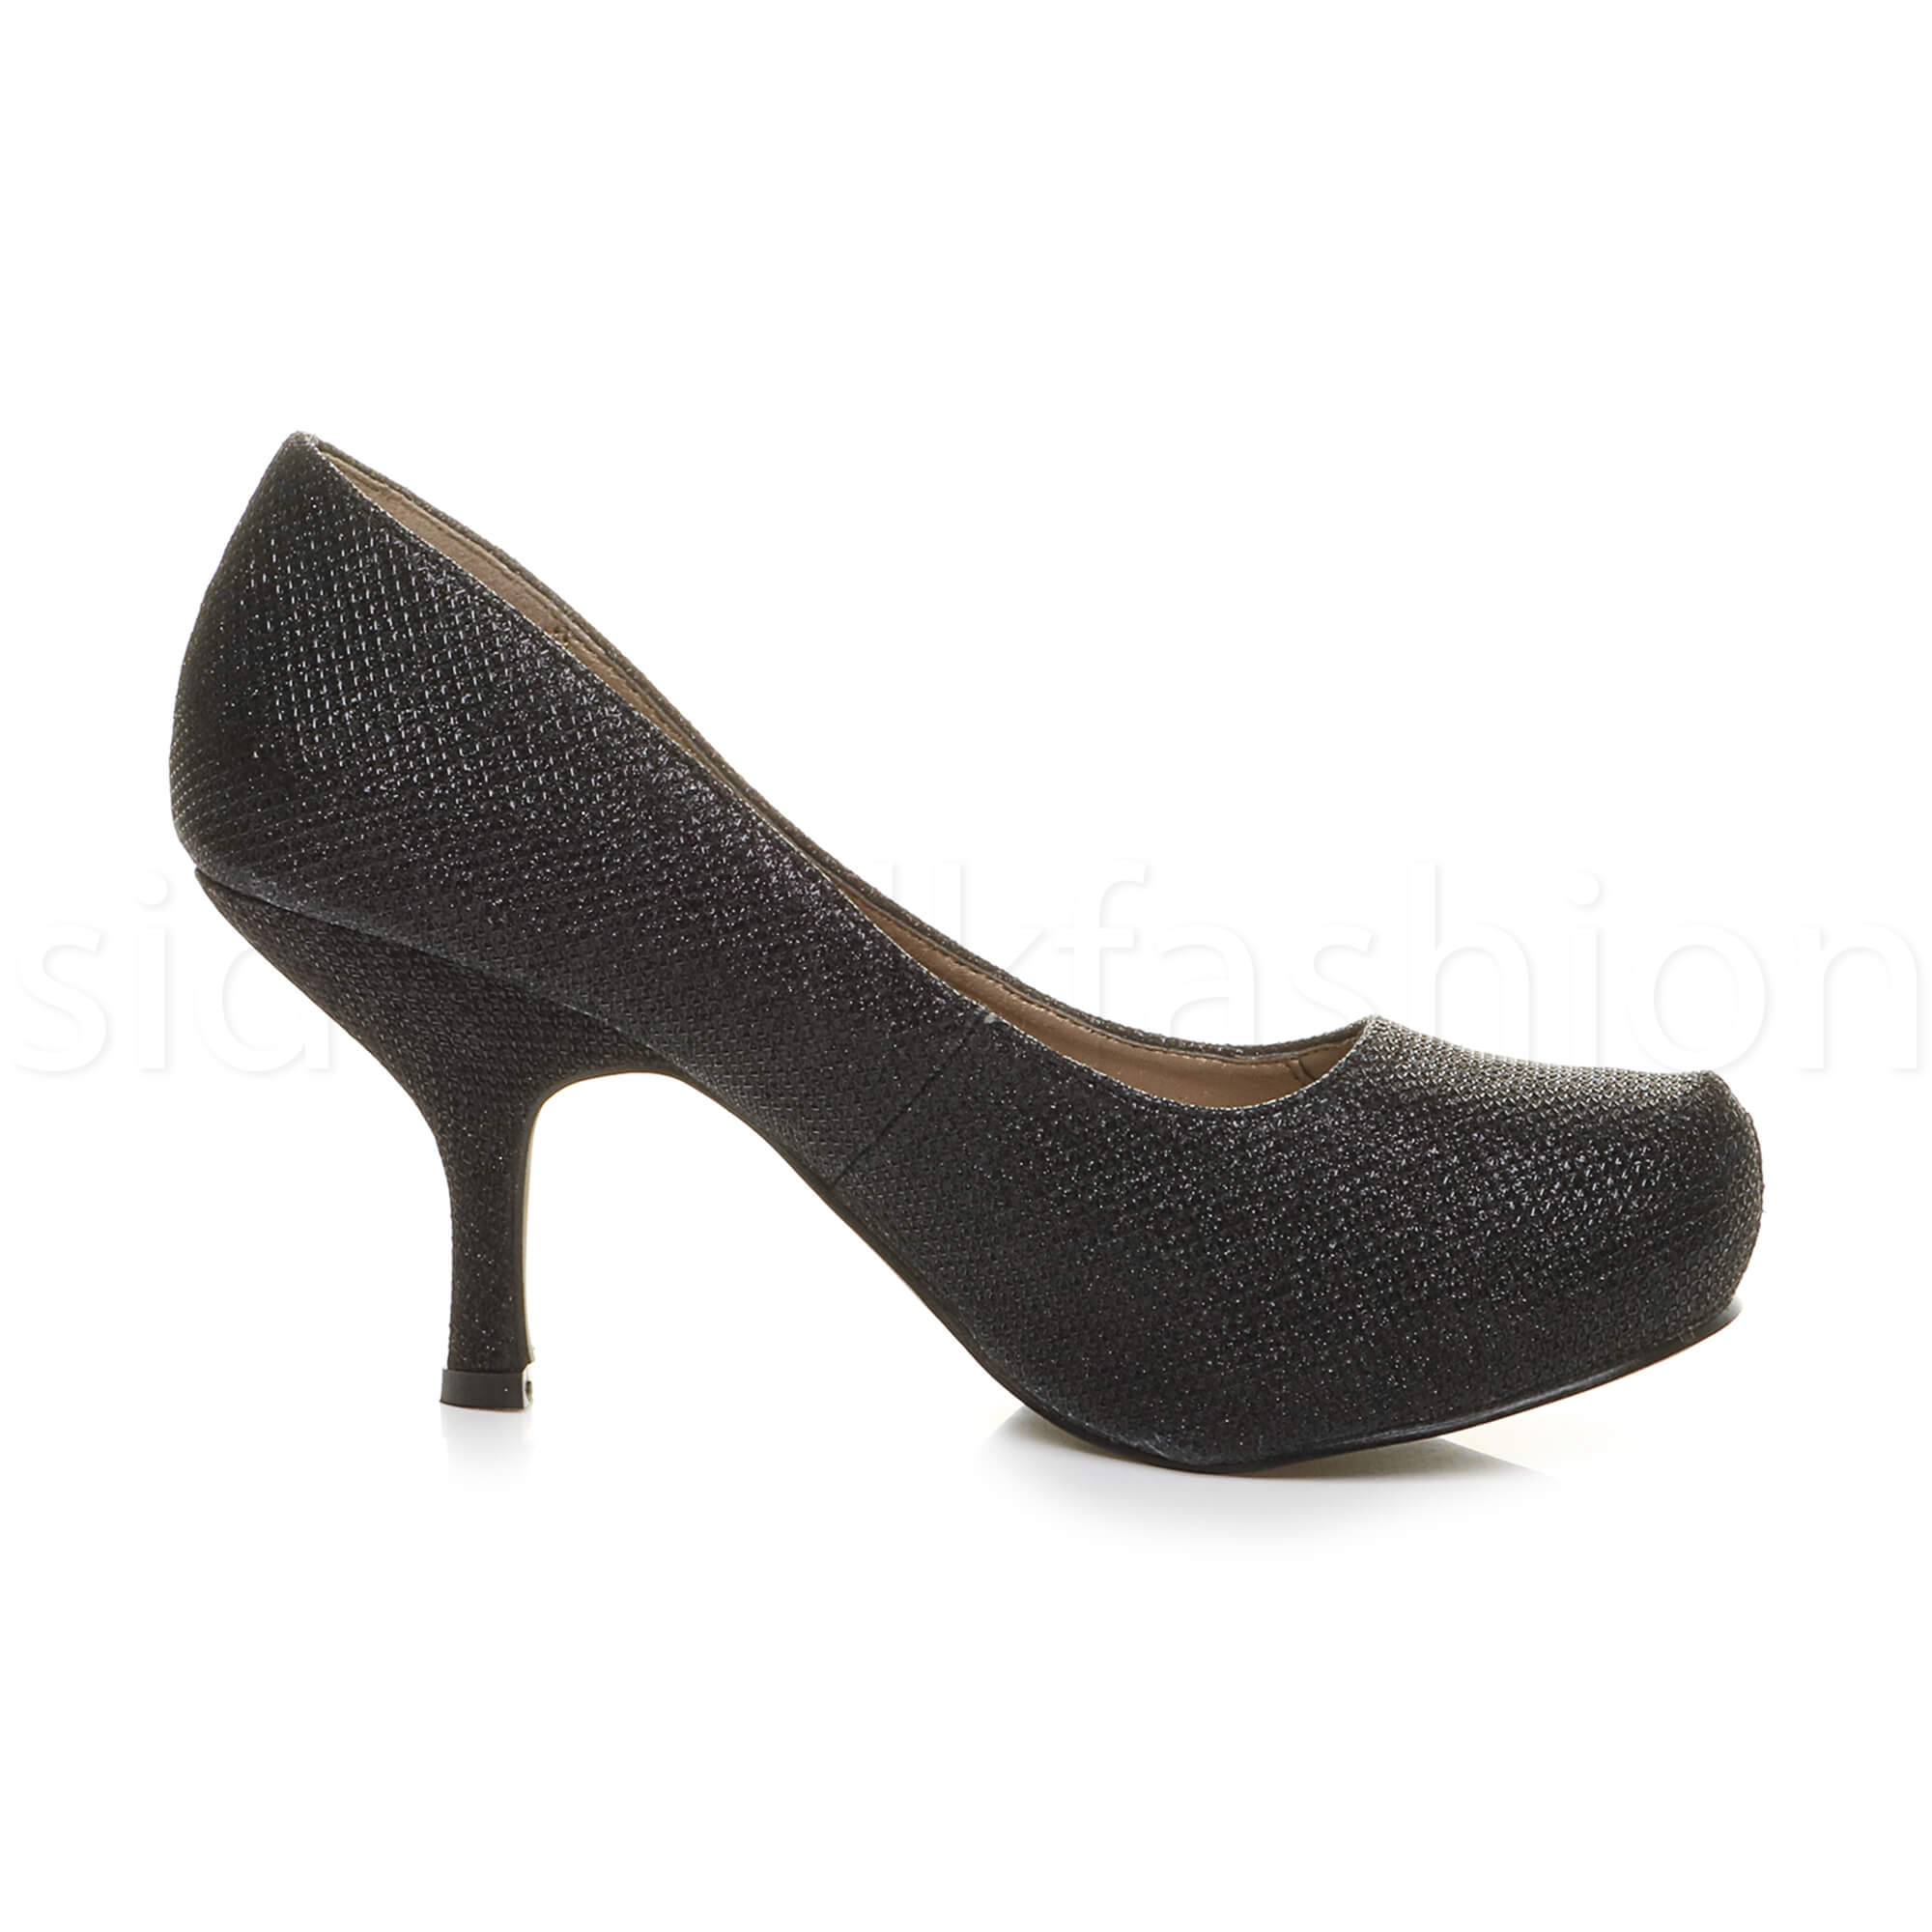 Womens-ladies-low-mid-heel-concealed-platform-work-party-court-shoes-pumps-size thumbnail 10